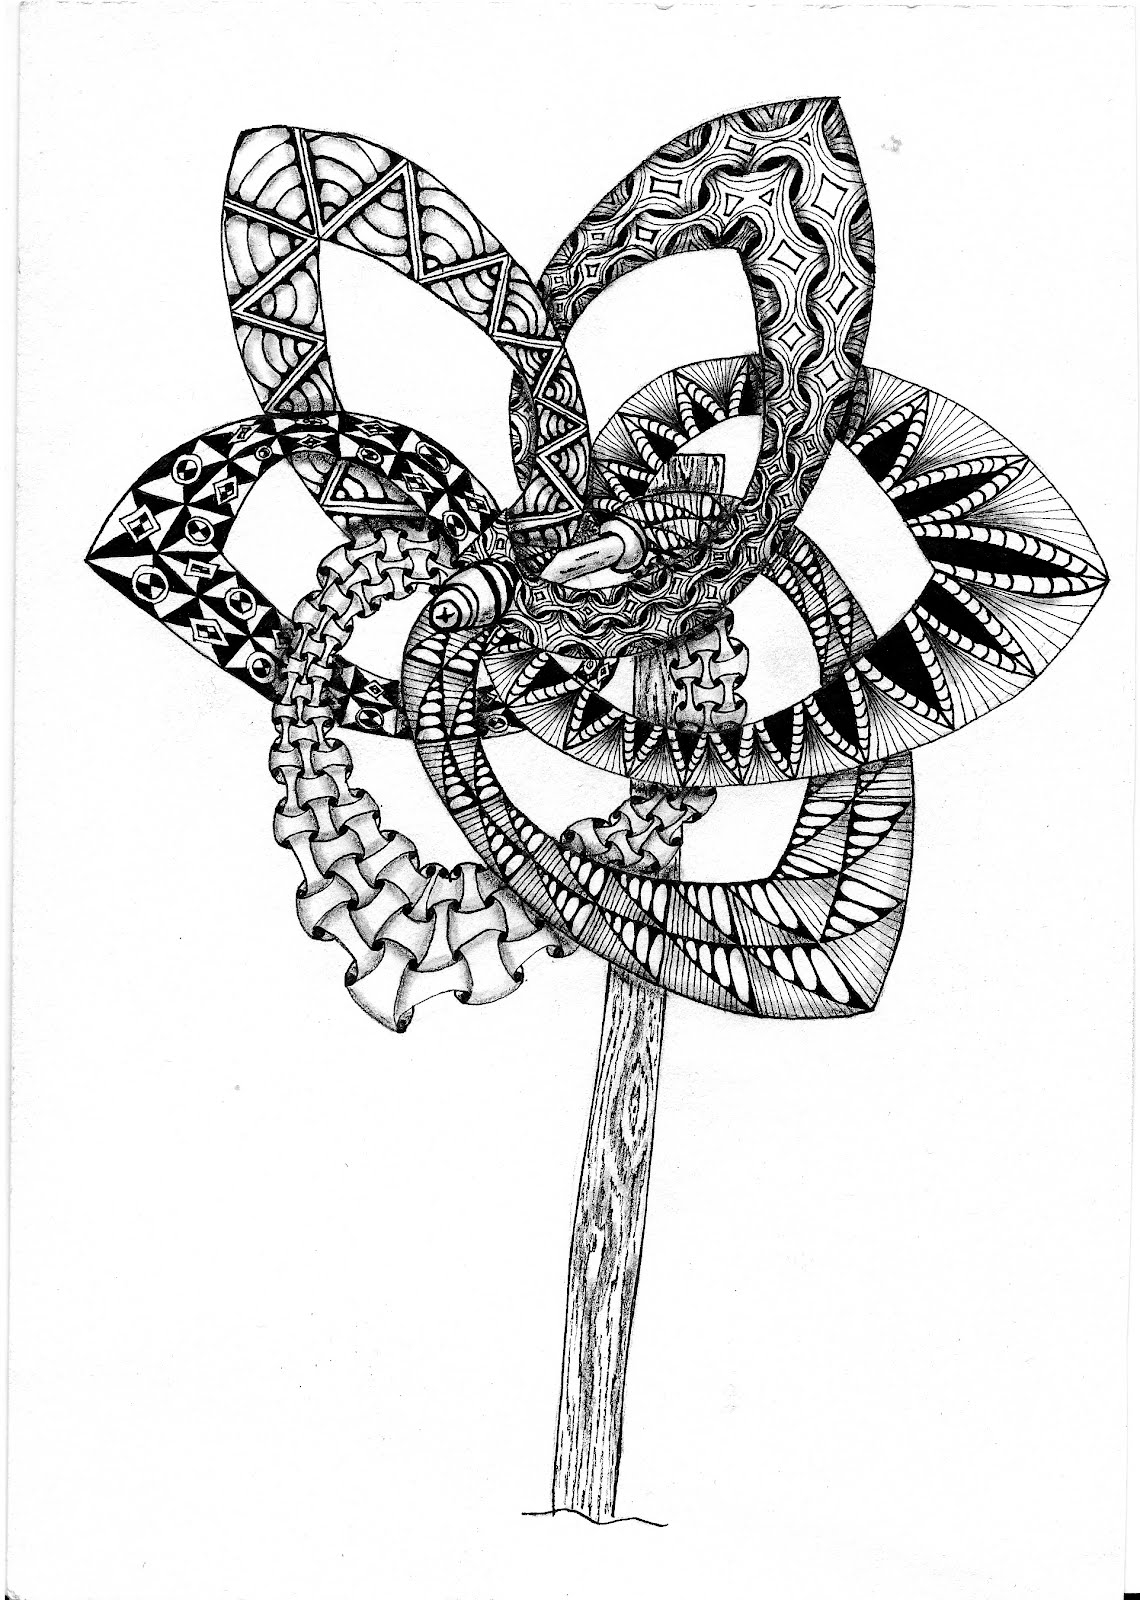 inquisitive sue zentangle challenge 87 string theory v xii